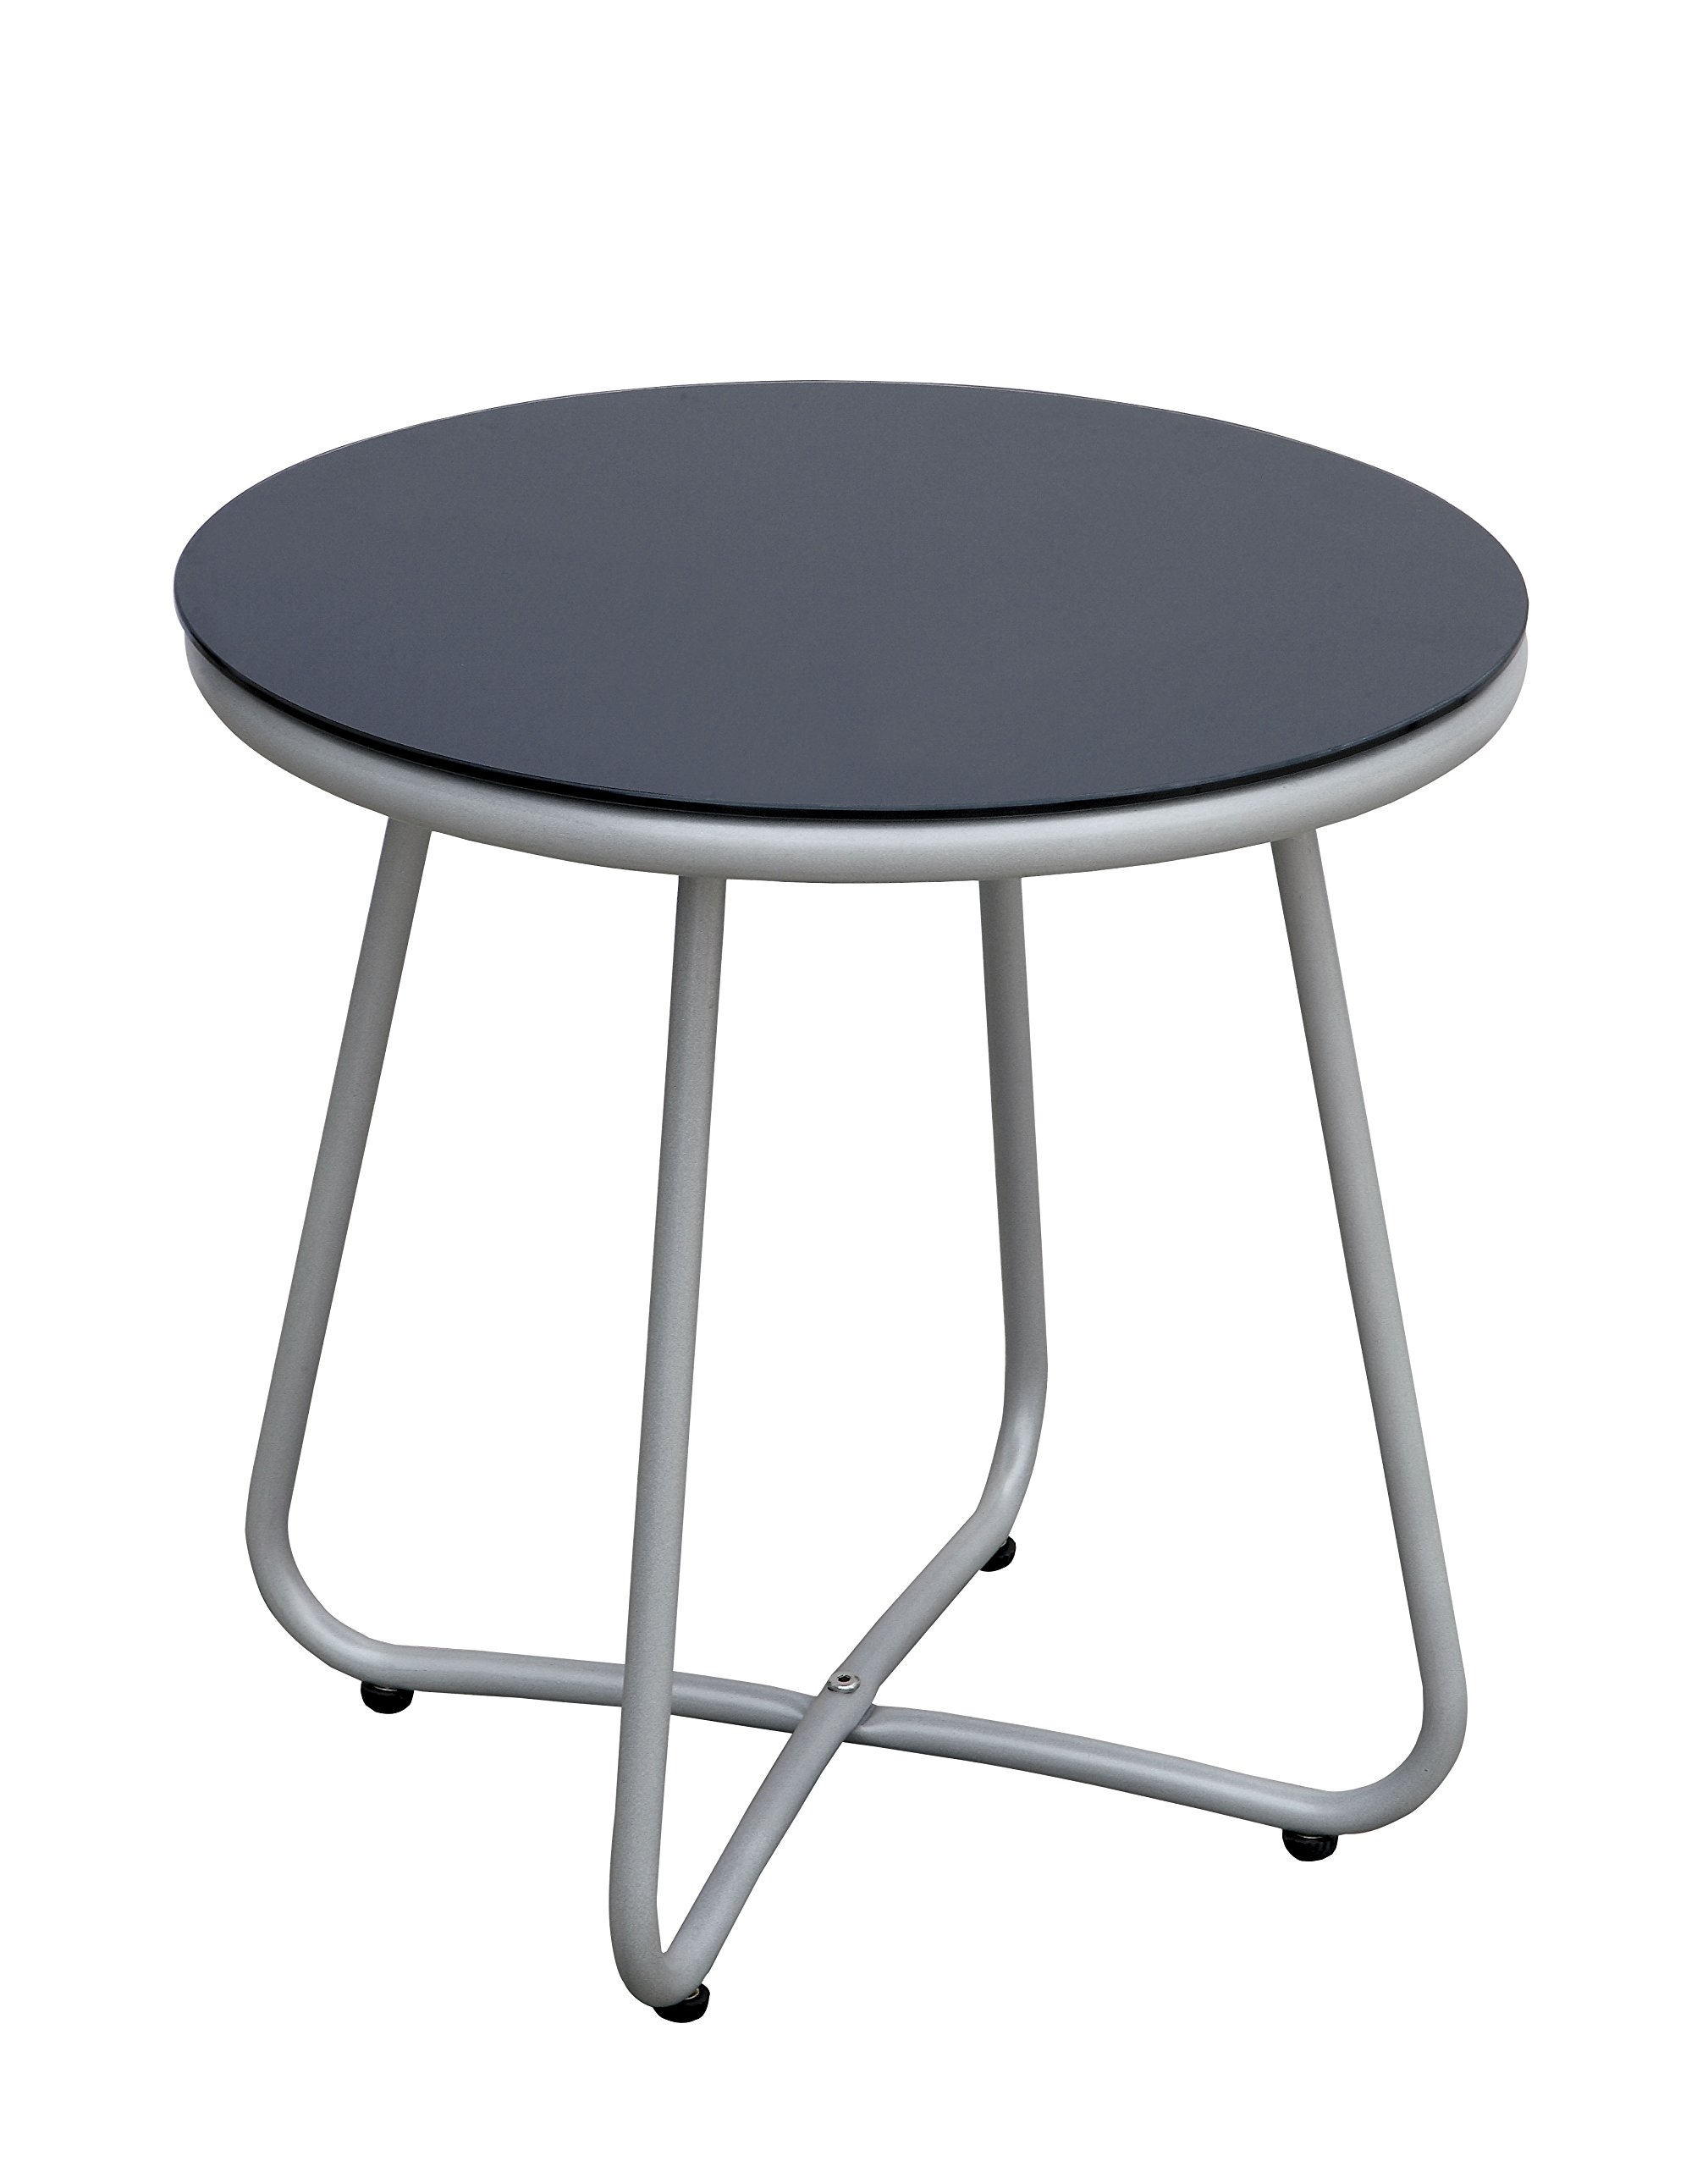 patio tables lavorist glass top outdoor side table athome idf myami grey contemporary style sturdy wide bedside cabinets cube battery powered living room lamps kmart cushions